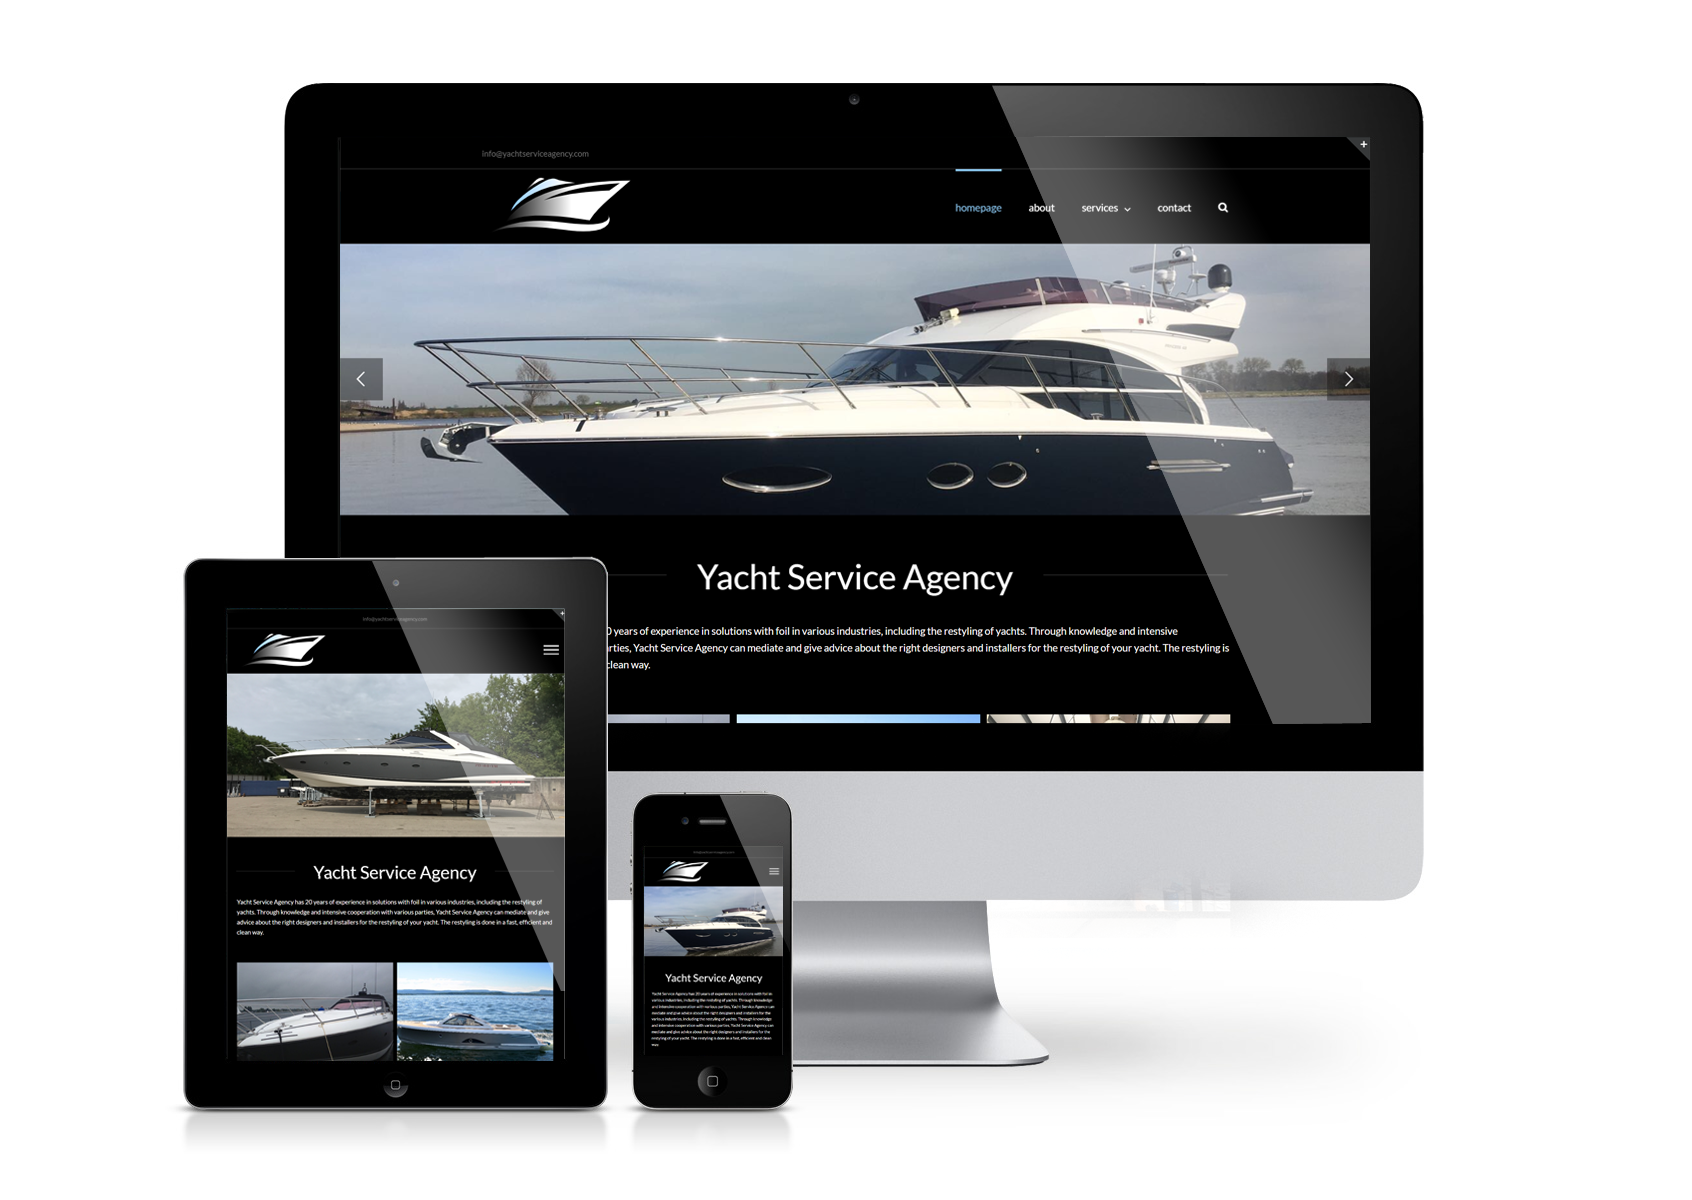 Yacht Service Agency website